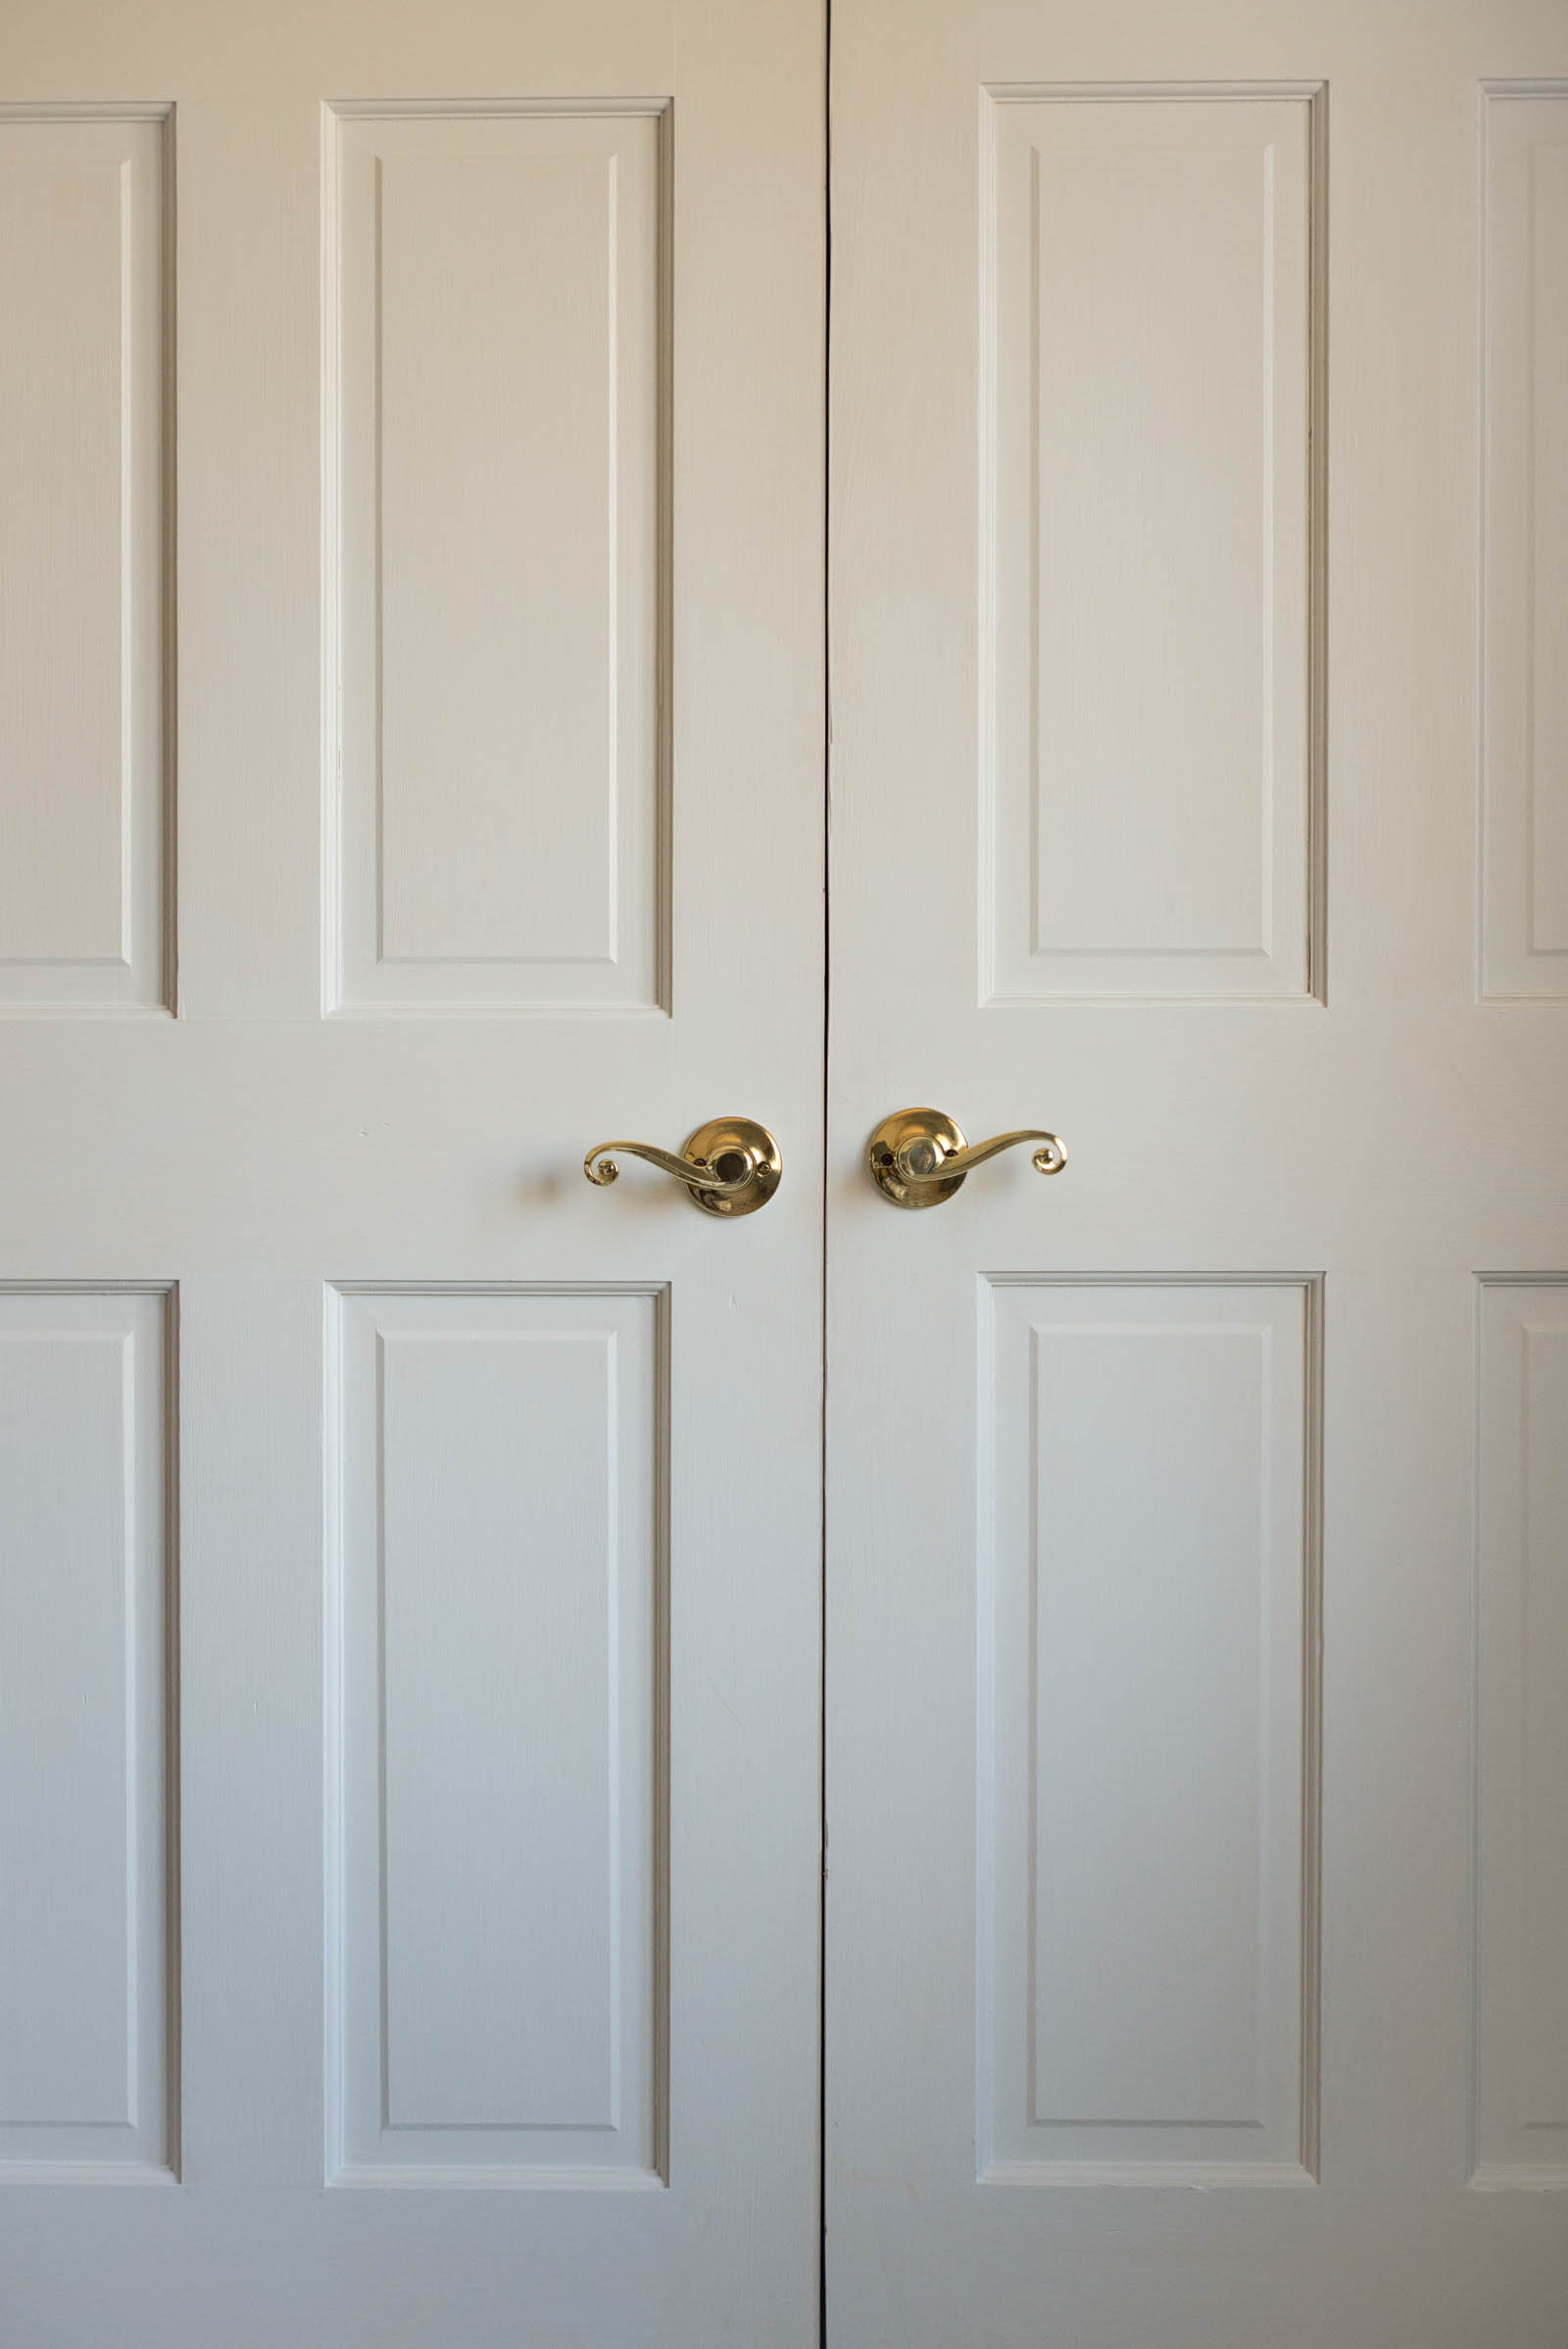 Gold dummy door knobs